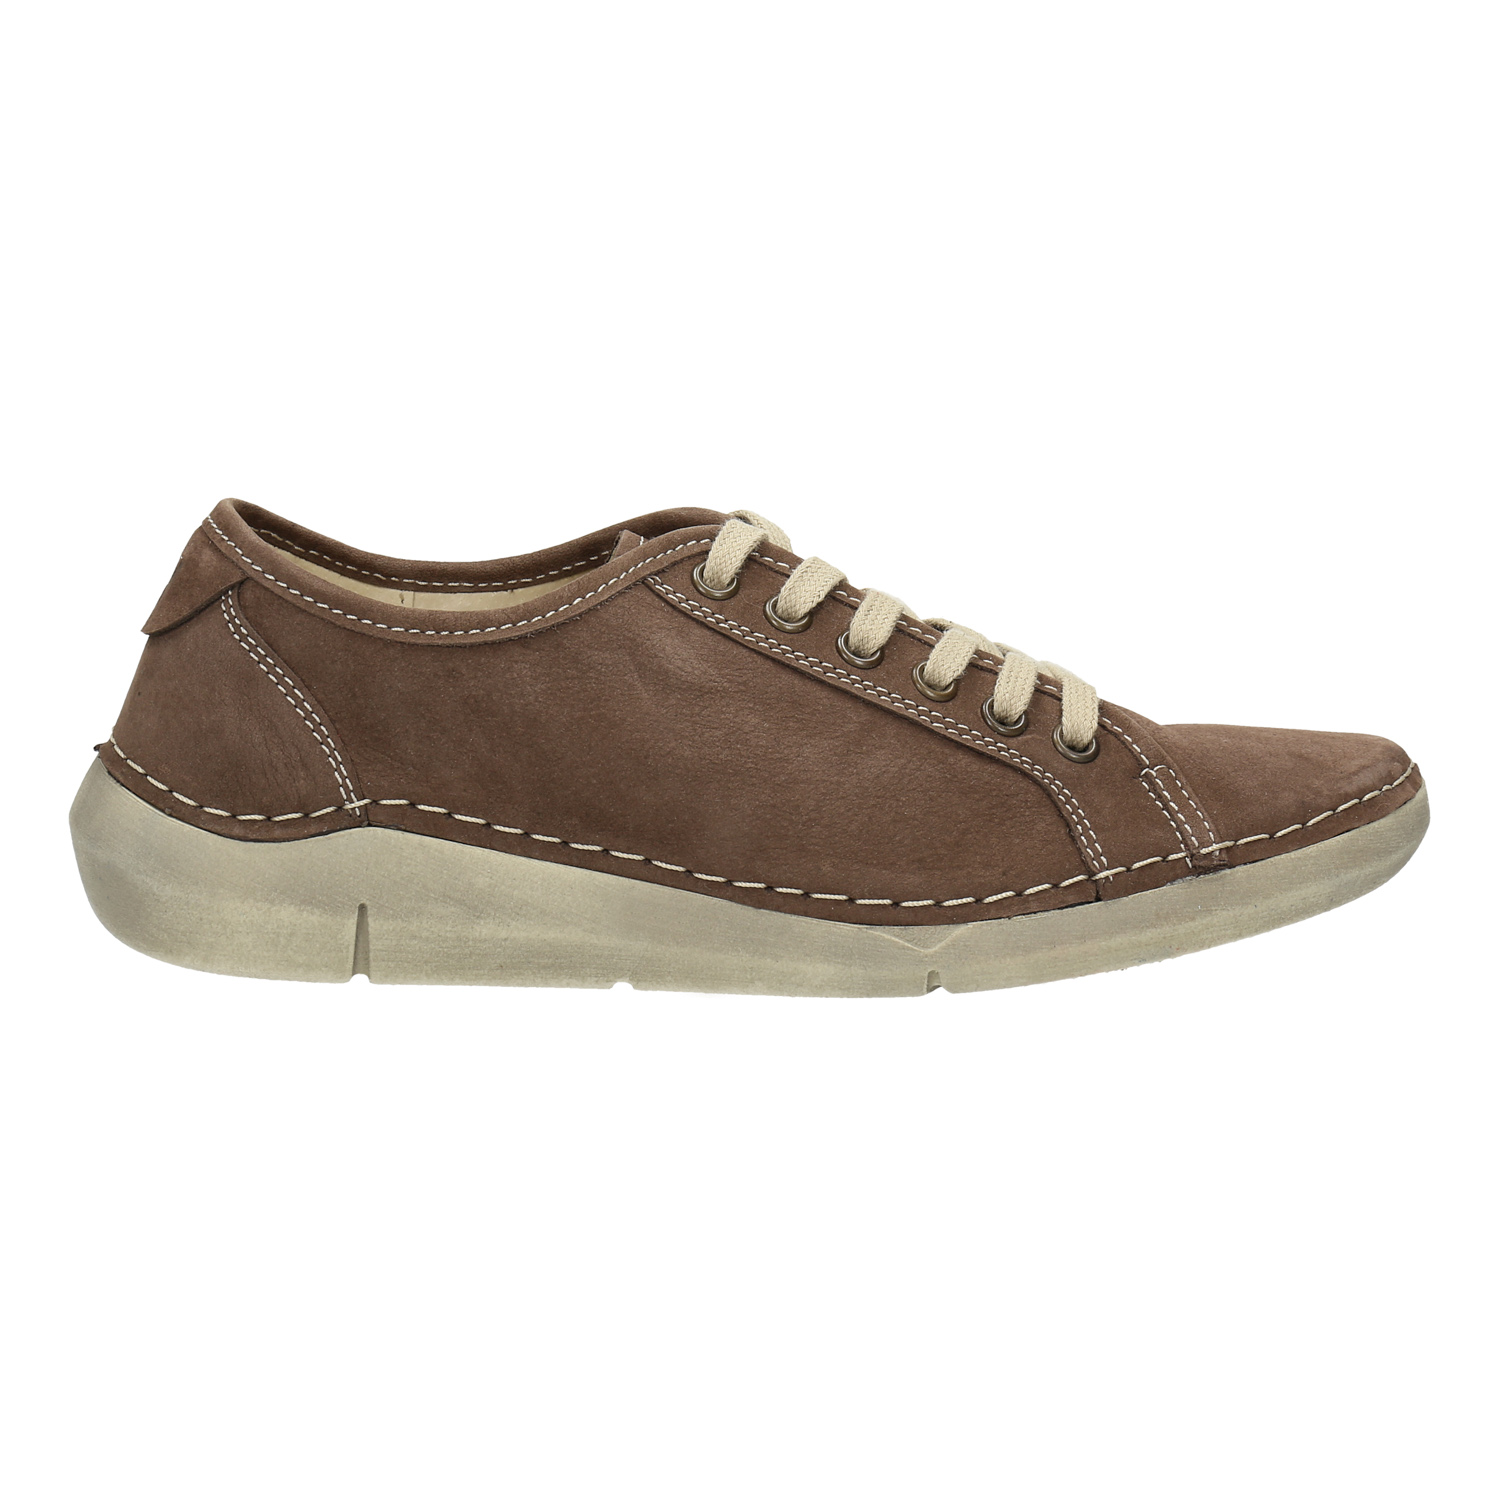 4013155145f Weinbrenner Casual leather shoes for ladies - No Heel